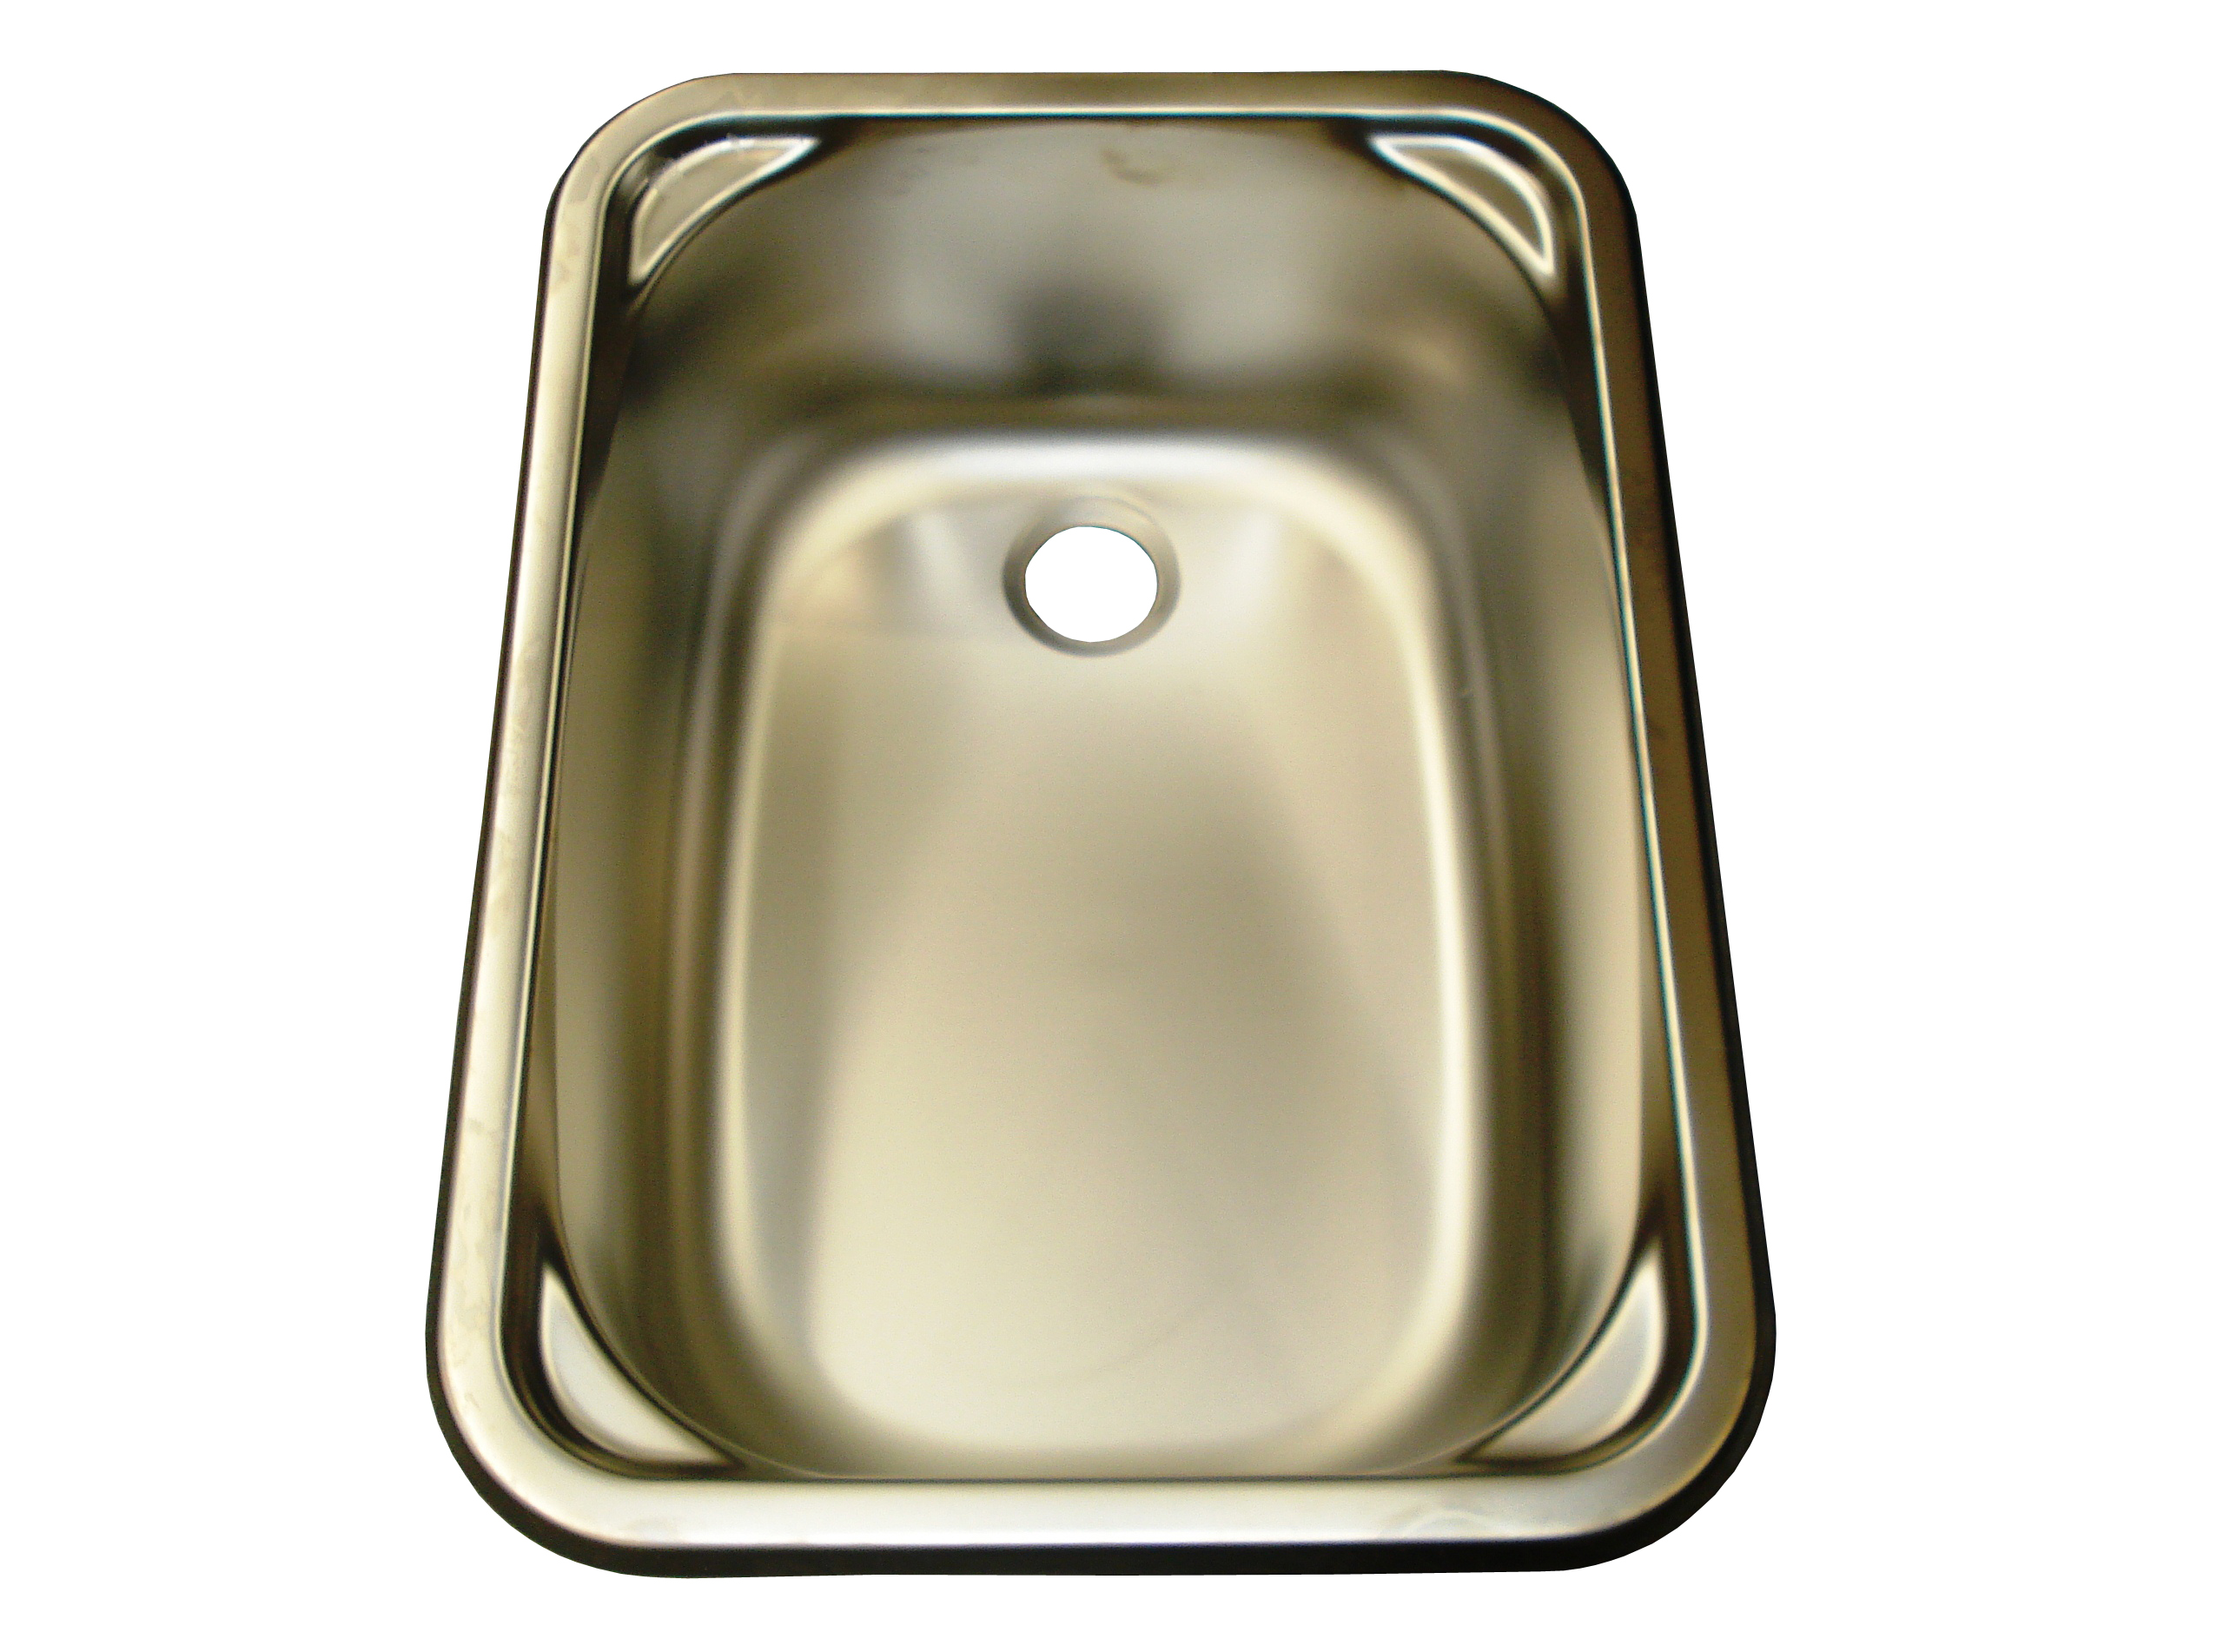 Smev S/S Sink Rectangular Mod 930 280x380x145. T_9102300052 - Click to enlarge picture.